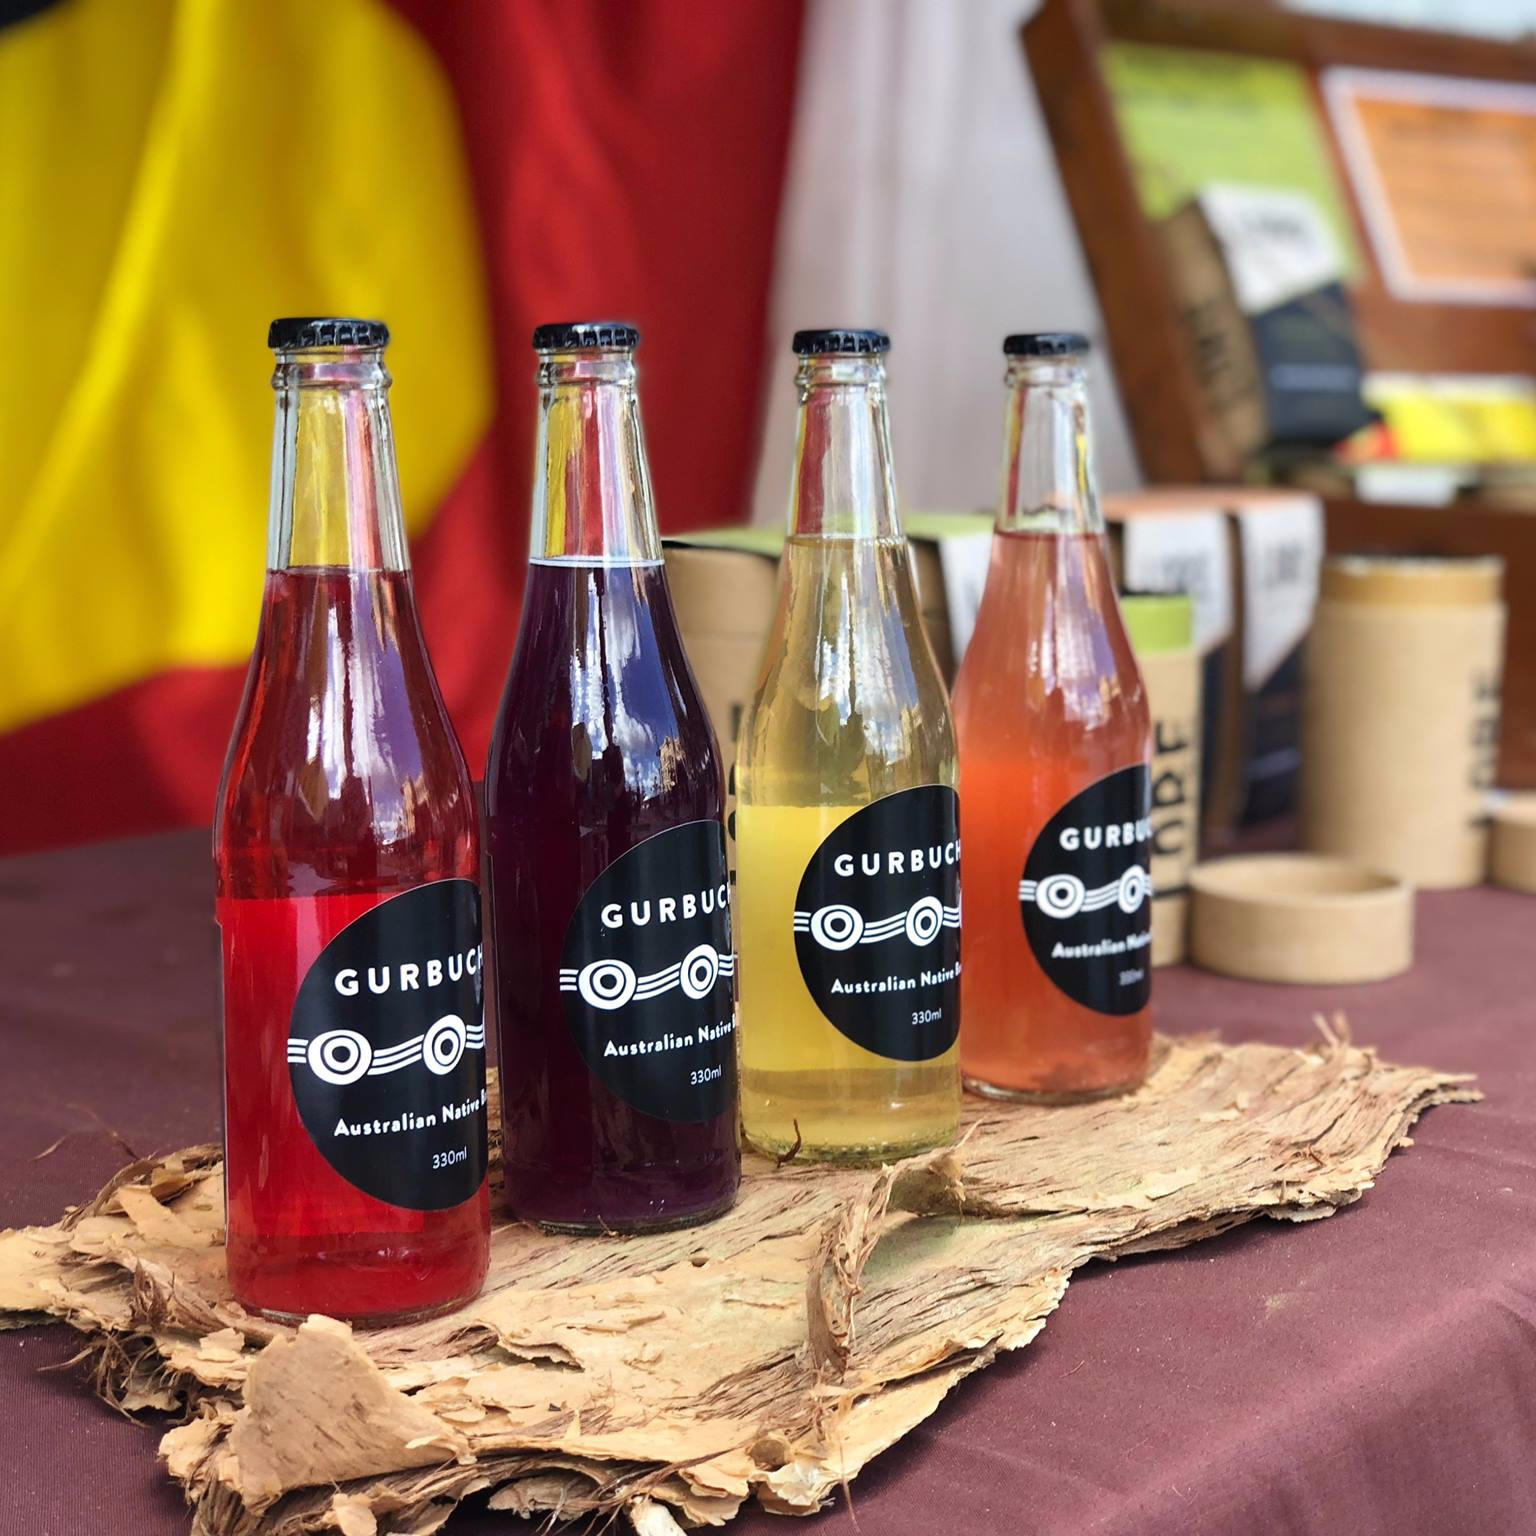 LORE AUSTRALIA - LOREAUSTRALIA.COMProudly First Nation owned and operated, LORE Australia is a health and wellness company using native bio-foods. LORE Australia provide Australian native bio-foods that enhance quality of life and facilitate a connection with the land from which they are sourced.